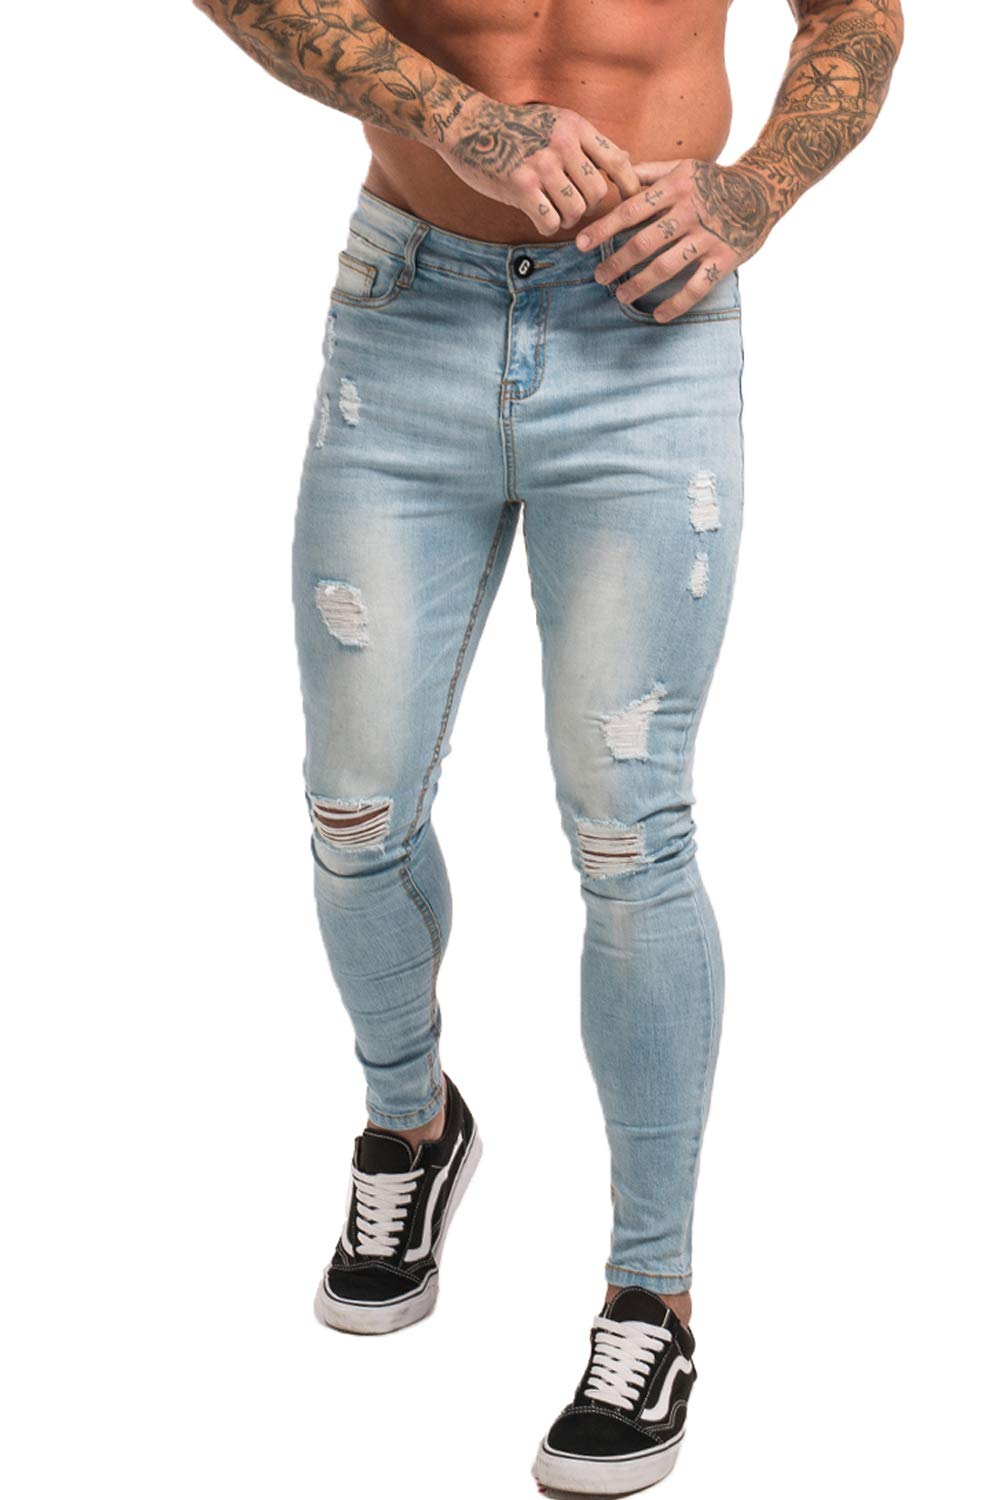 173825877cb GINGTTO Skinny Jeans for Men Stretch Slim Fit Ripped Distressed 30 Ice Blue  Repaired